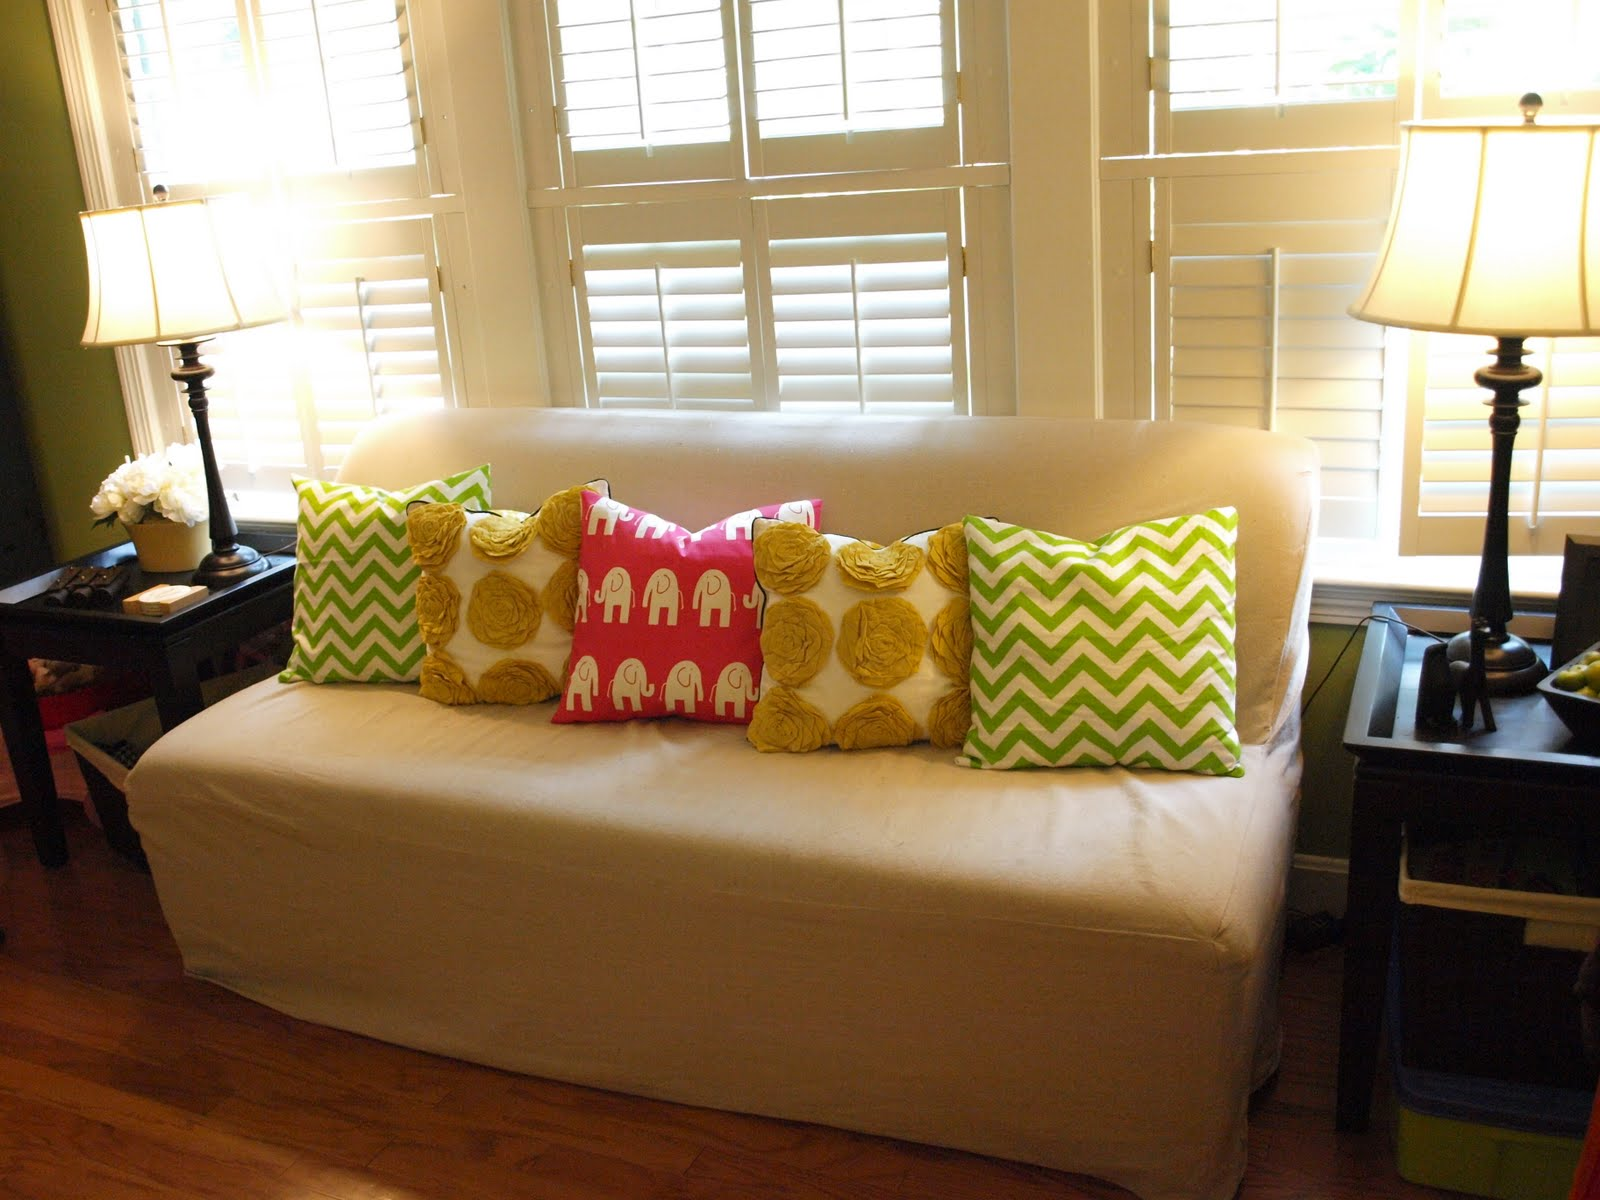 Phenomenal Throw Pillows At Target For Sofa Black Budget Homes Bralicious Painted Fabric Chair Ideas Braliciousco